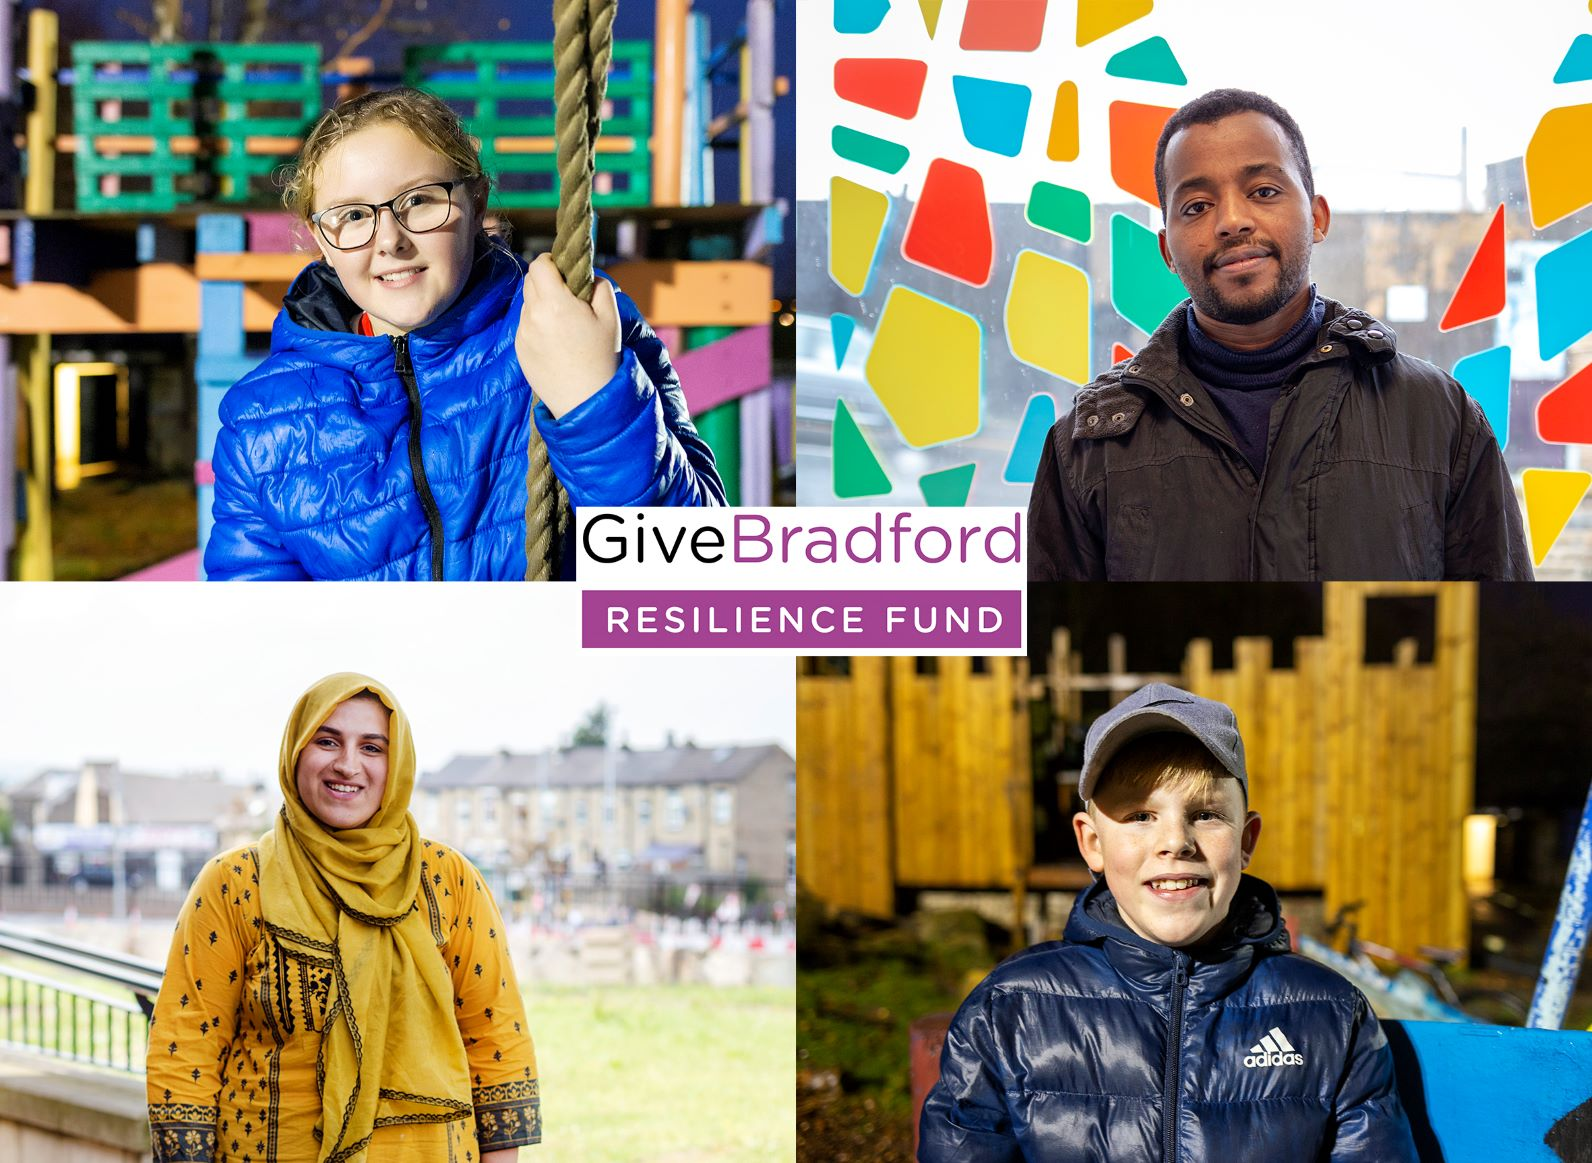 BID backs fund to save struggling Bradford charities